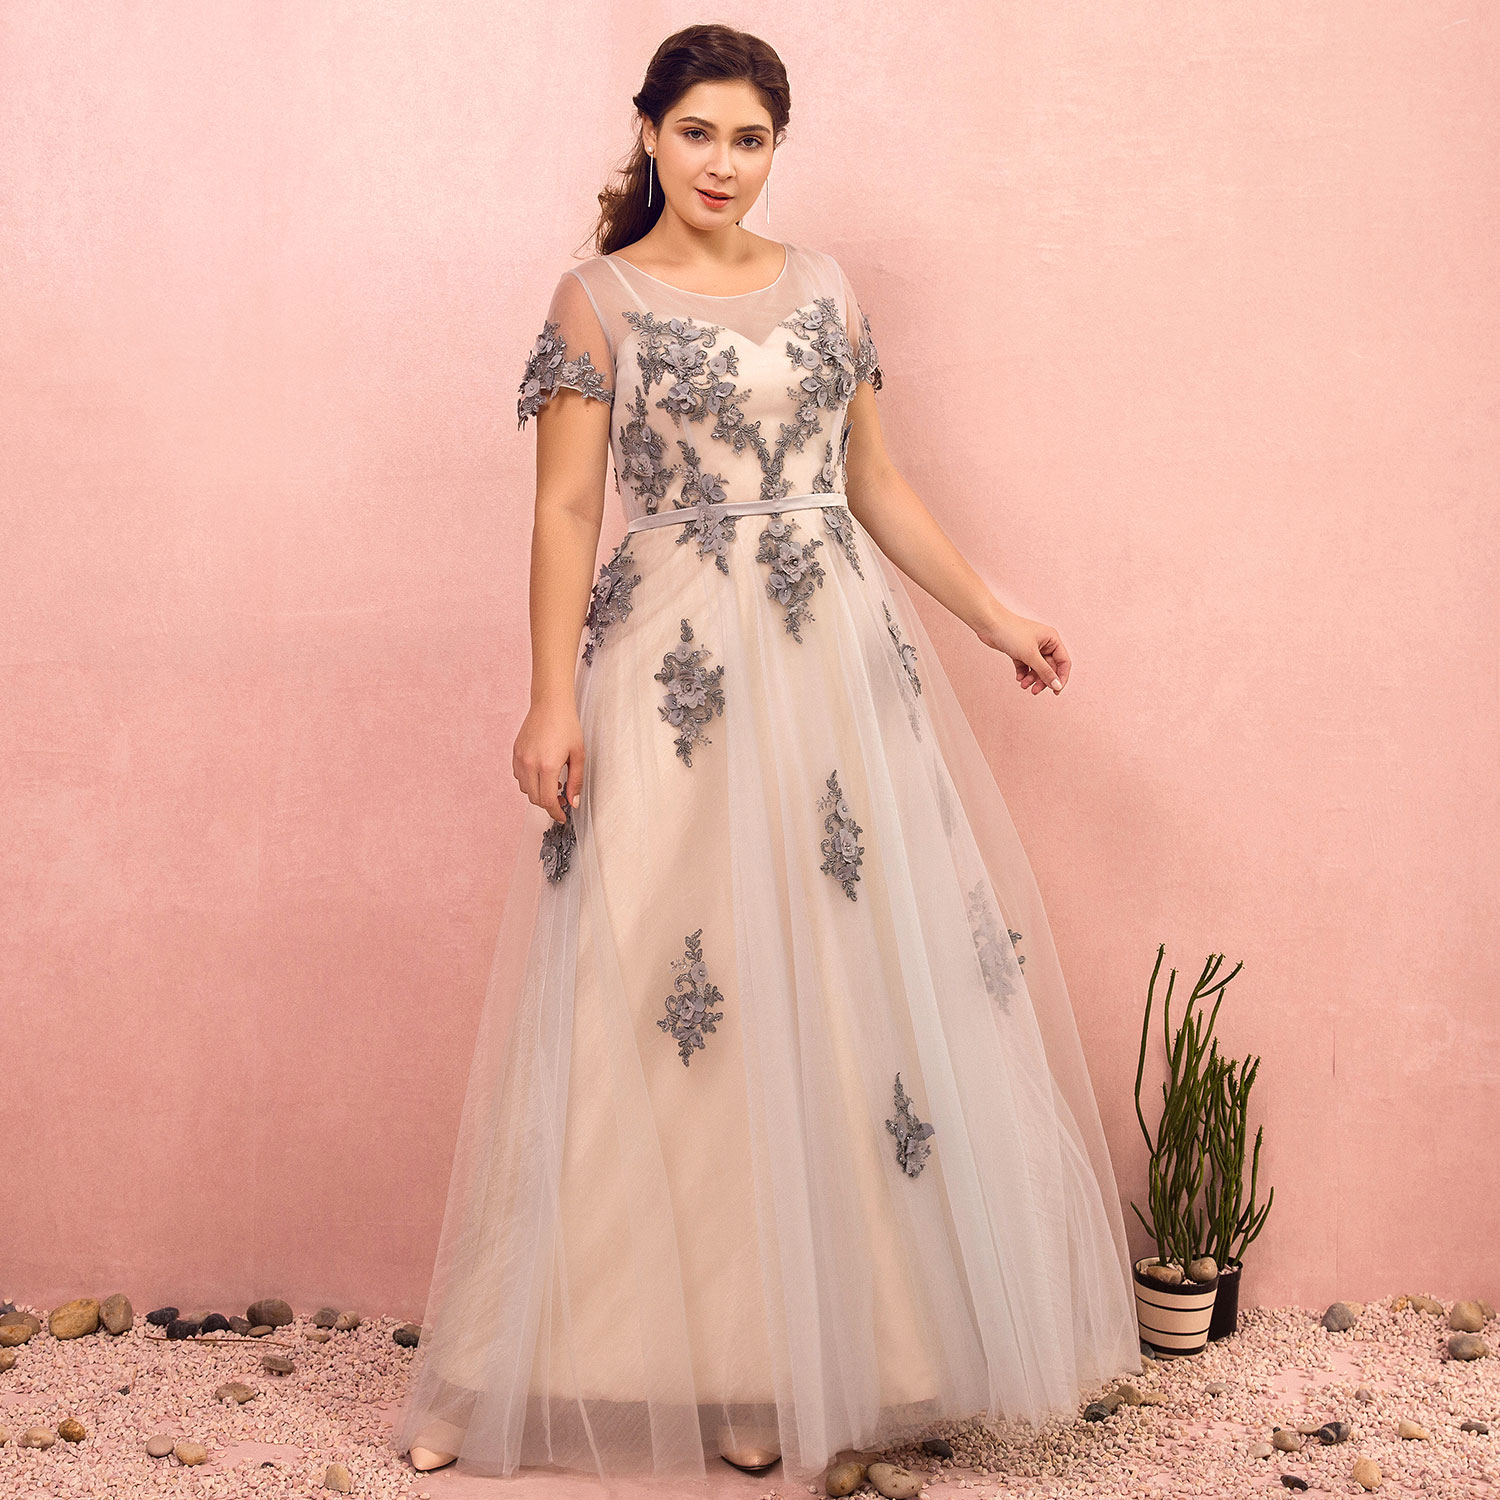 Evening Dresses 2019 Fashion A-line Bateau Natural Floor-length Lace-up T-shirt Party Gown